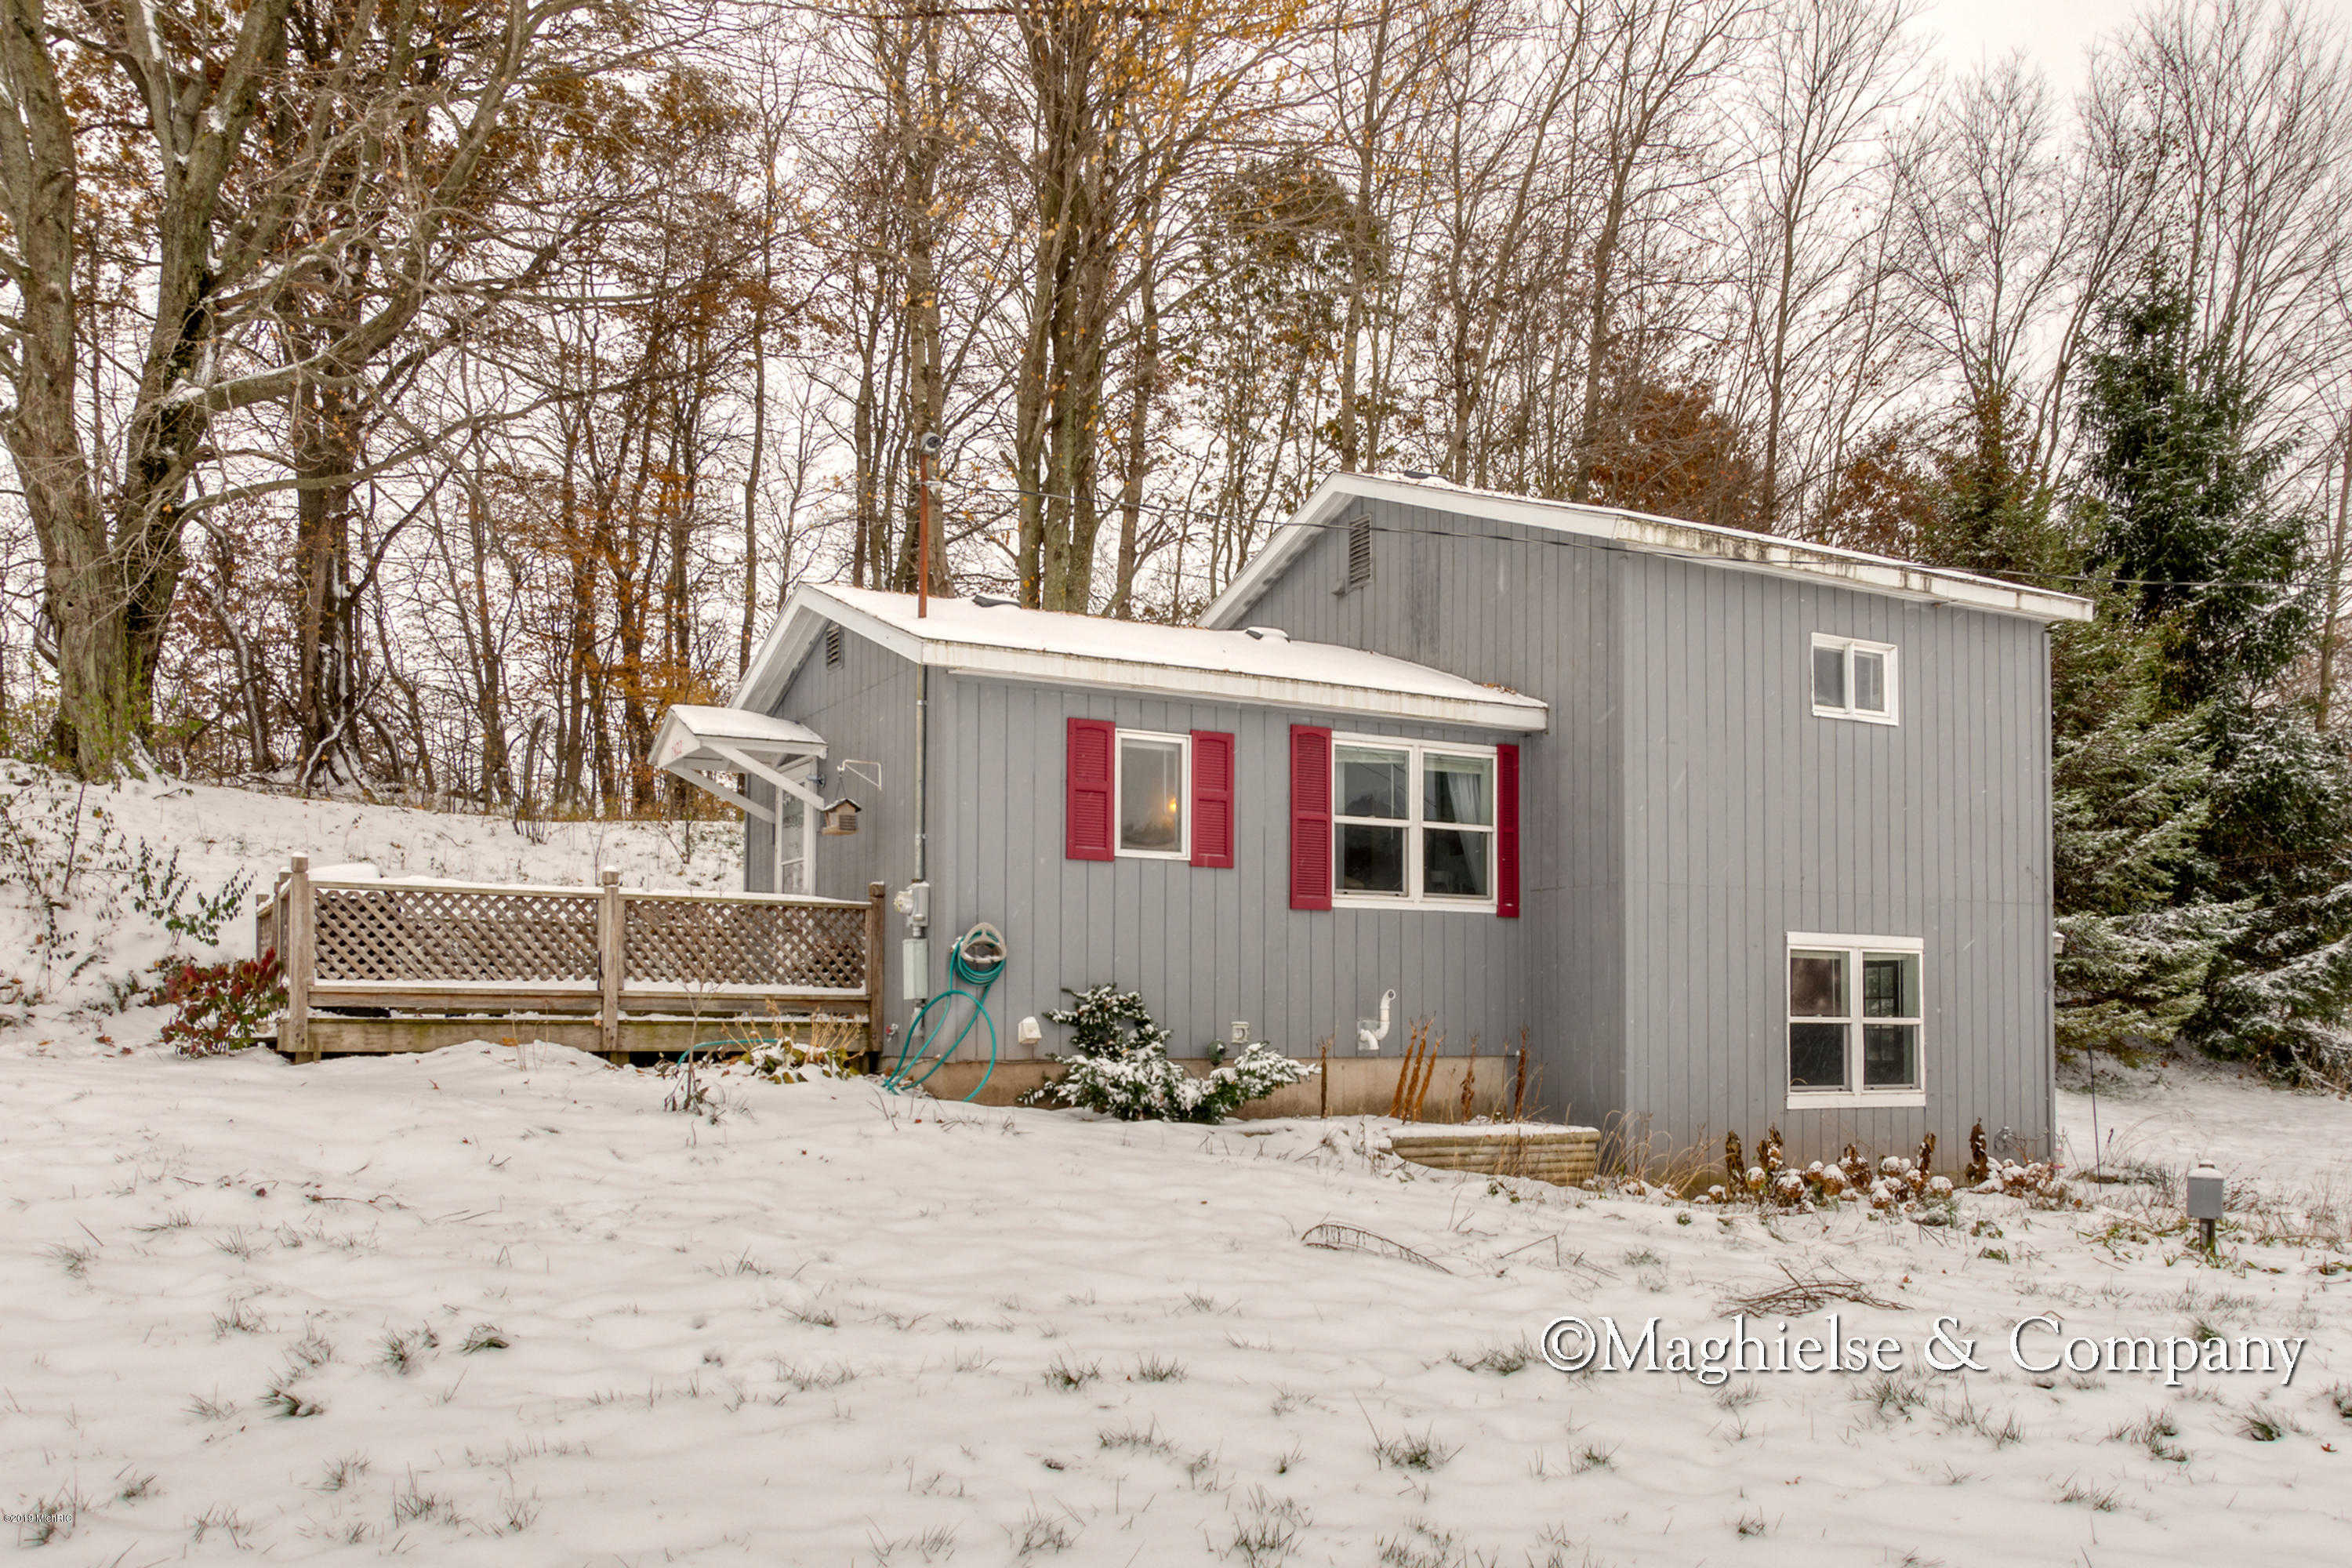 7422 E 22 Mile Road NE, Sand Lake, MI 49343 has an Open House on  Sunday, January 26, 2020 1:00 PM to 2:30 PM